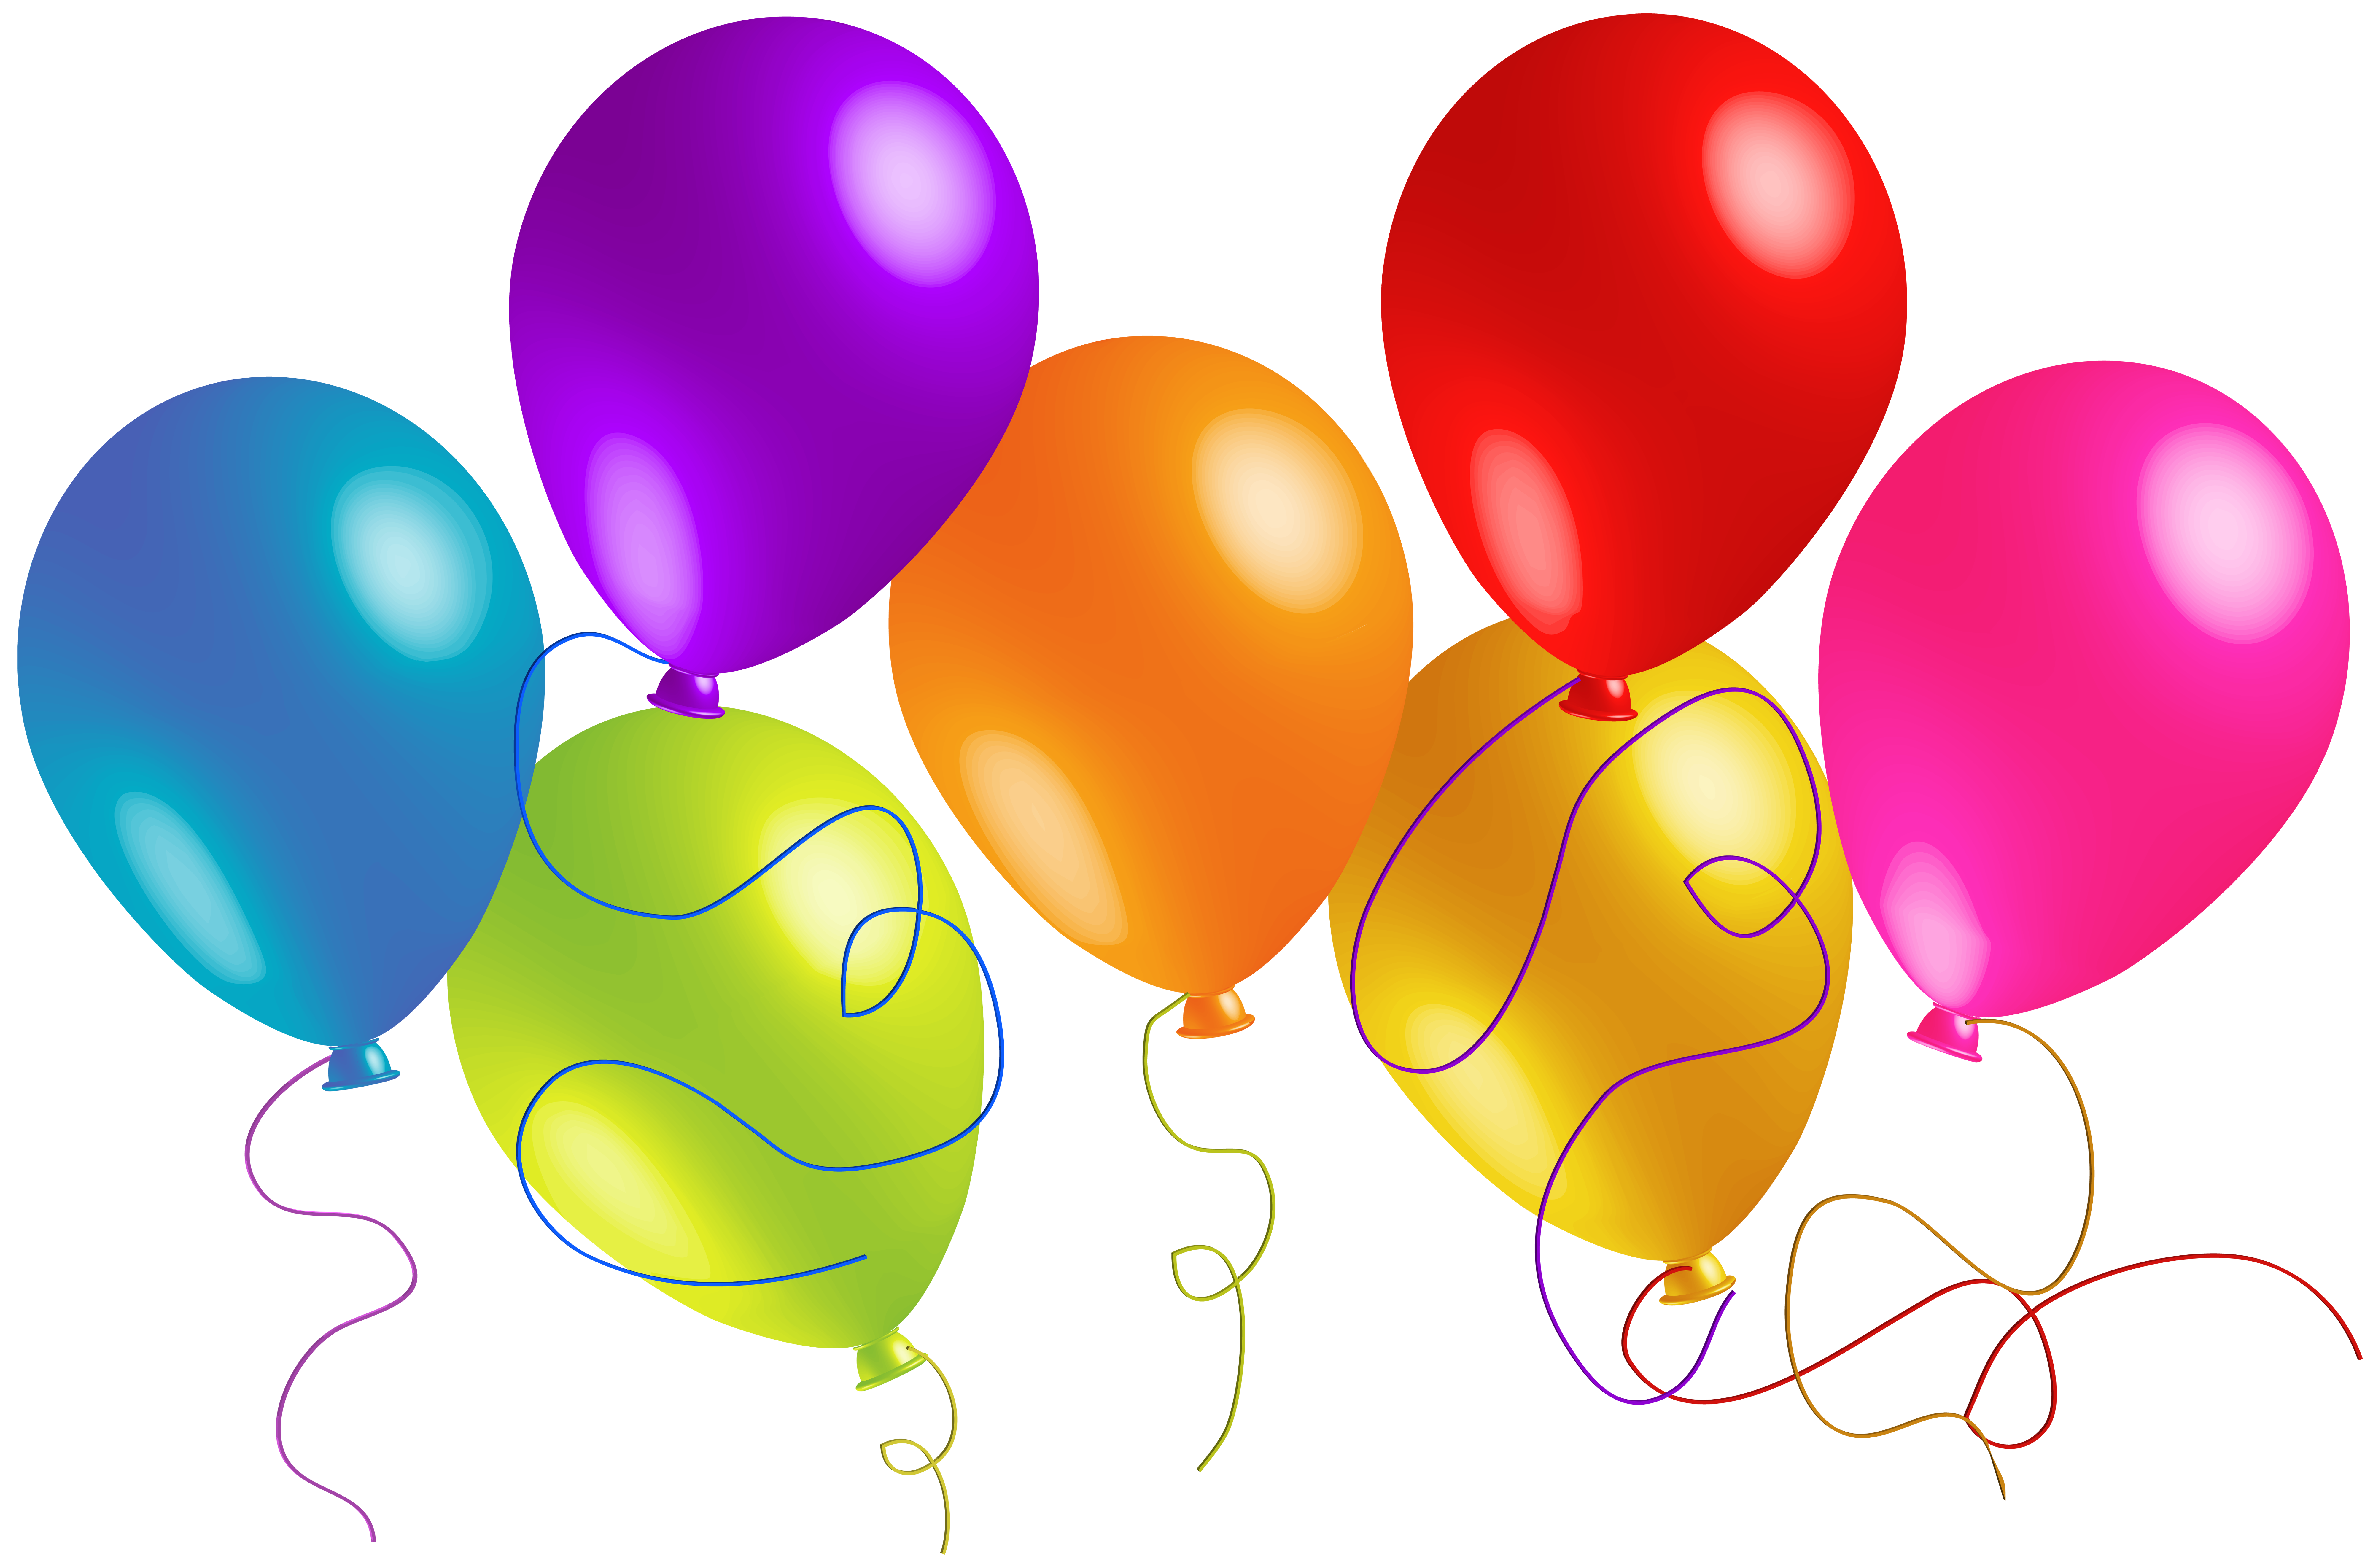 Large_Transparent_Colorful_Balloons_Clipart.png?m=1380924000.